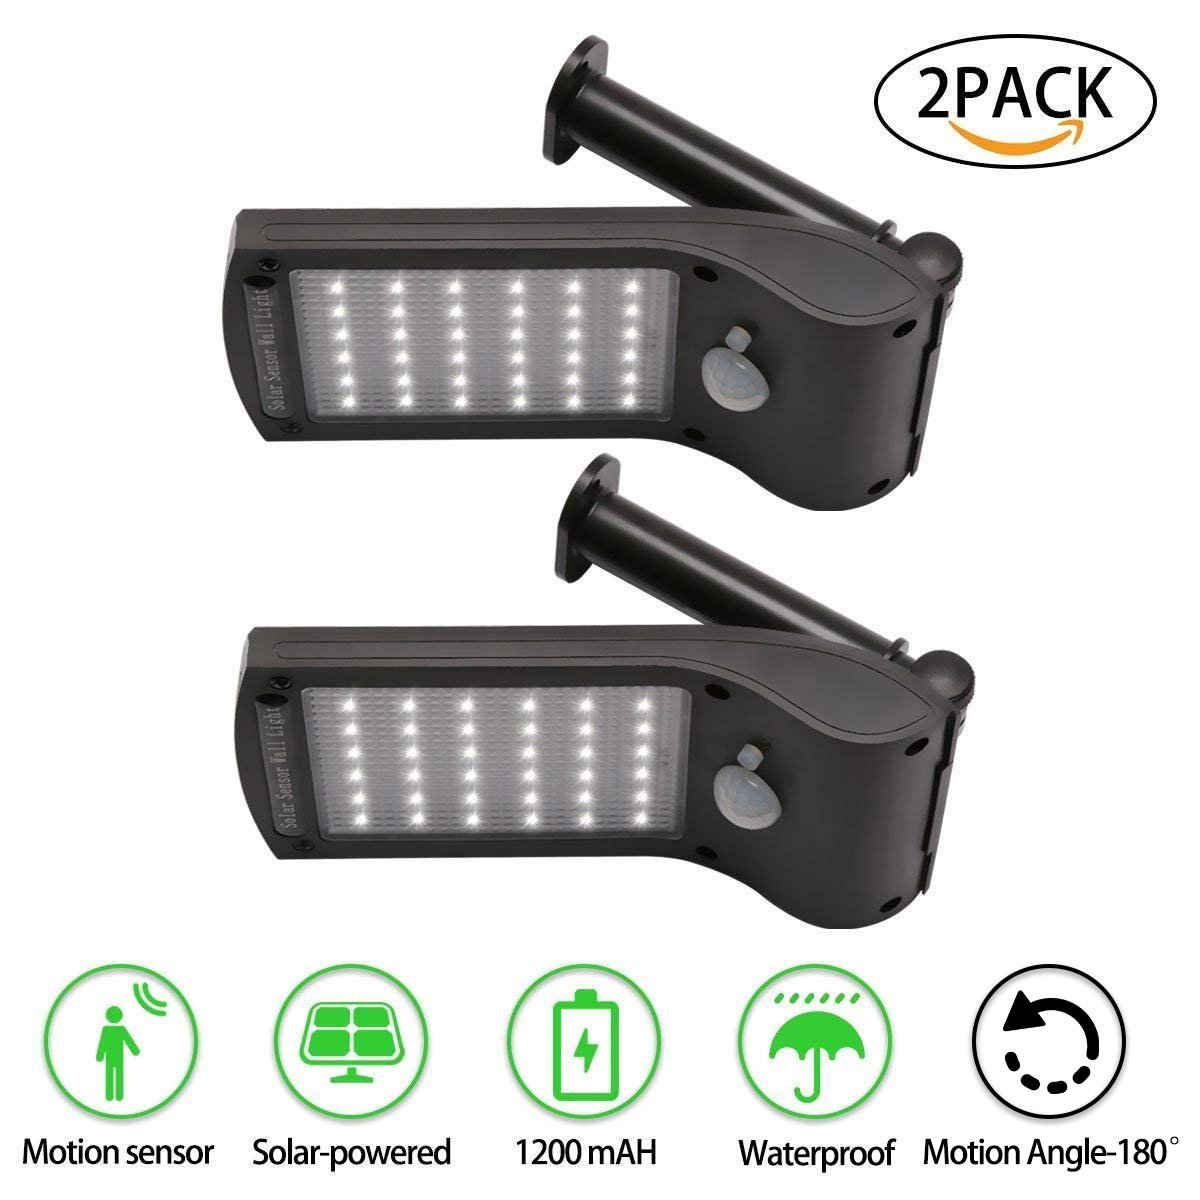 PETOWN Solar Lights Outdoor, 36 LED-Wall Solar Sensor Wall Light Outdoor Security,Lighting Nightlight,Waterproof,Removable, For Garden,Back Yard,Fence,Garage,Garden,Pathway (2 PACKS)